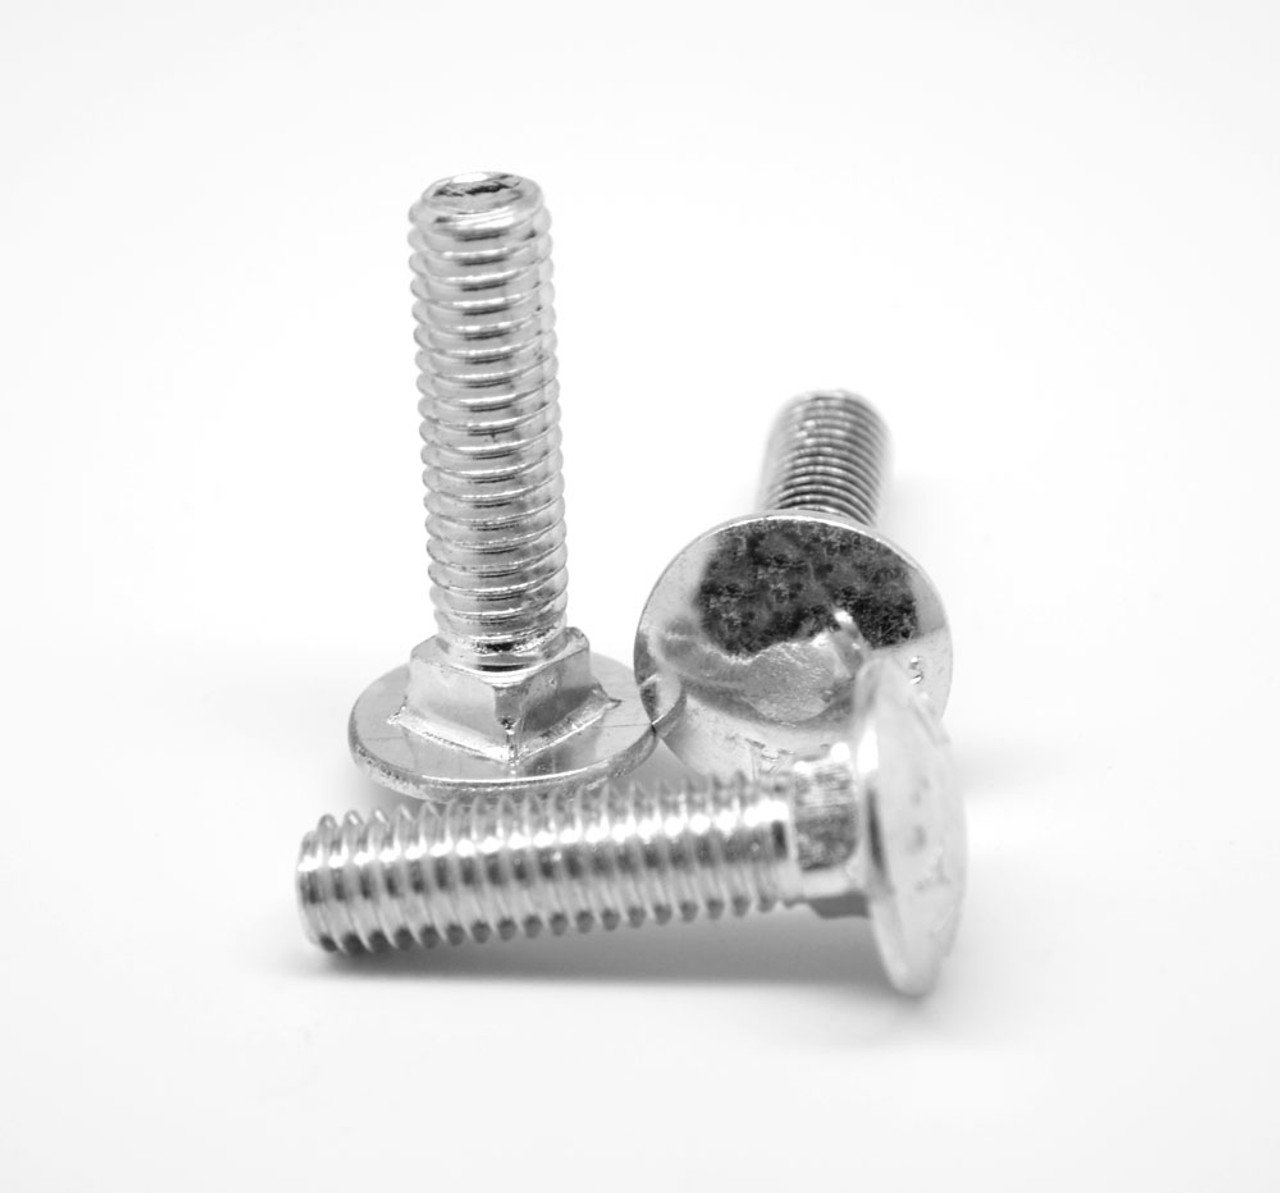 """#10-24 x 1/2"""" (FT) Coarse Thread A307 Grade A Carriage Bolt Low Carbon Steel Zinc Plated"""